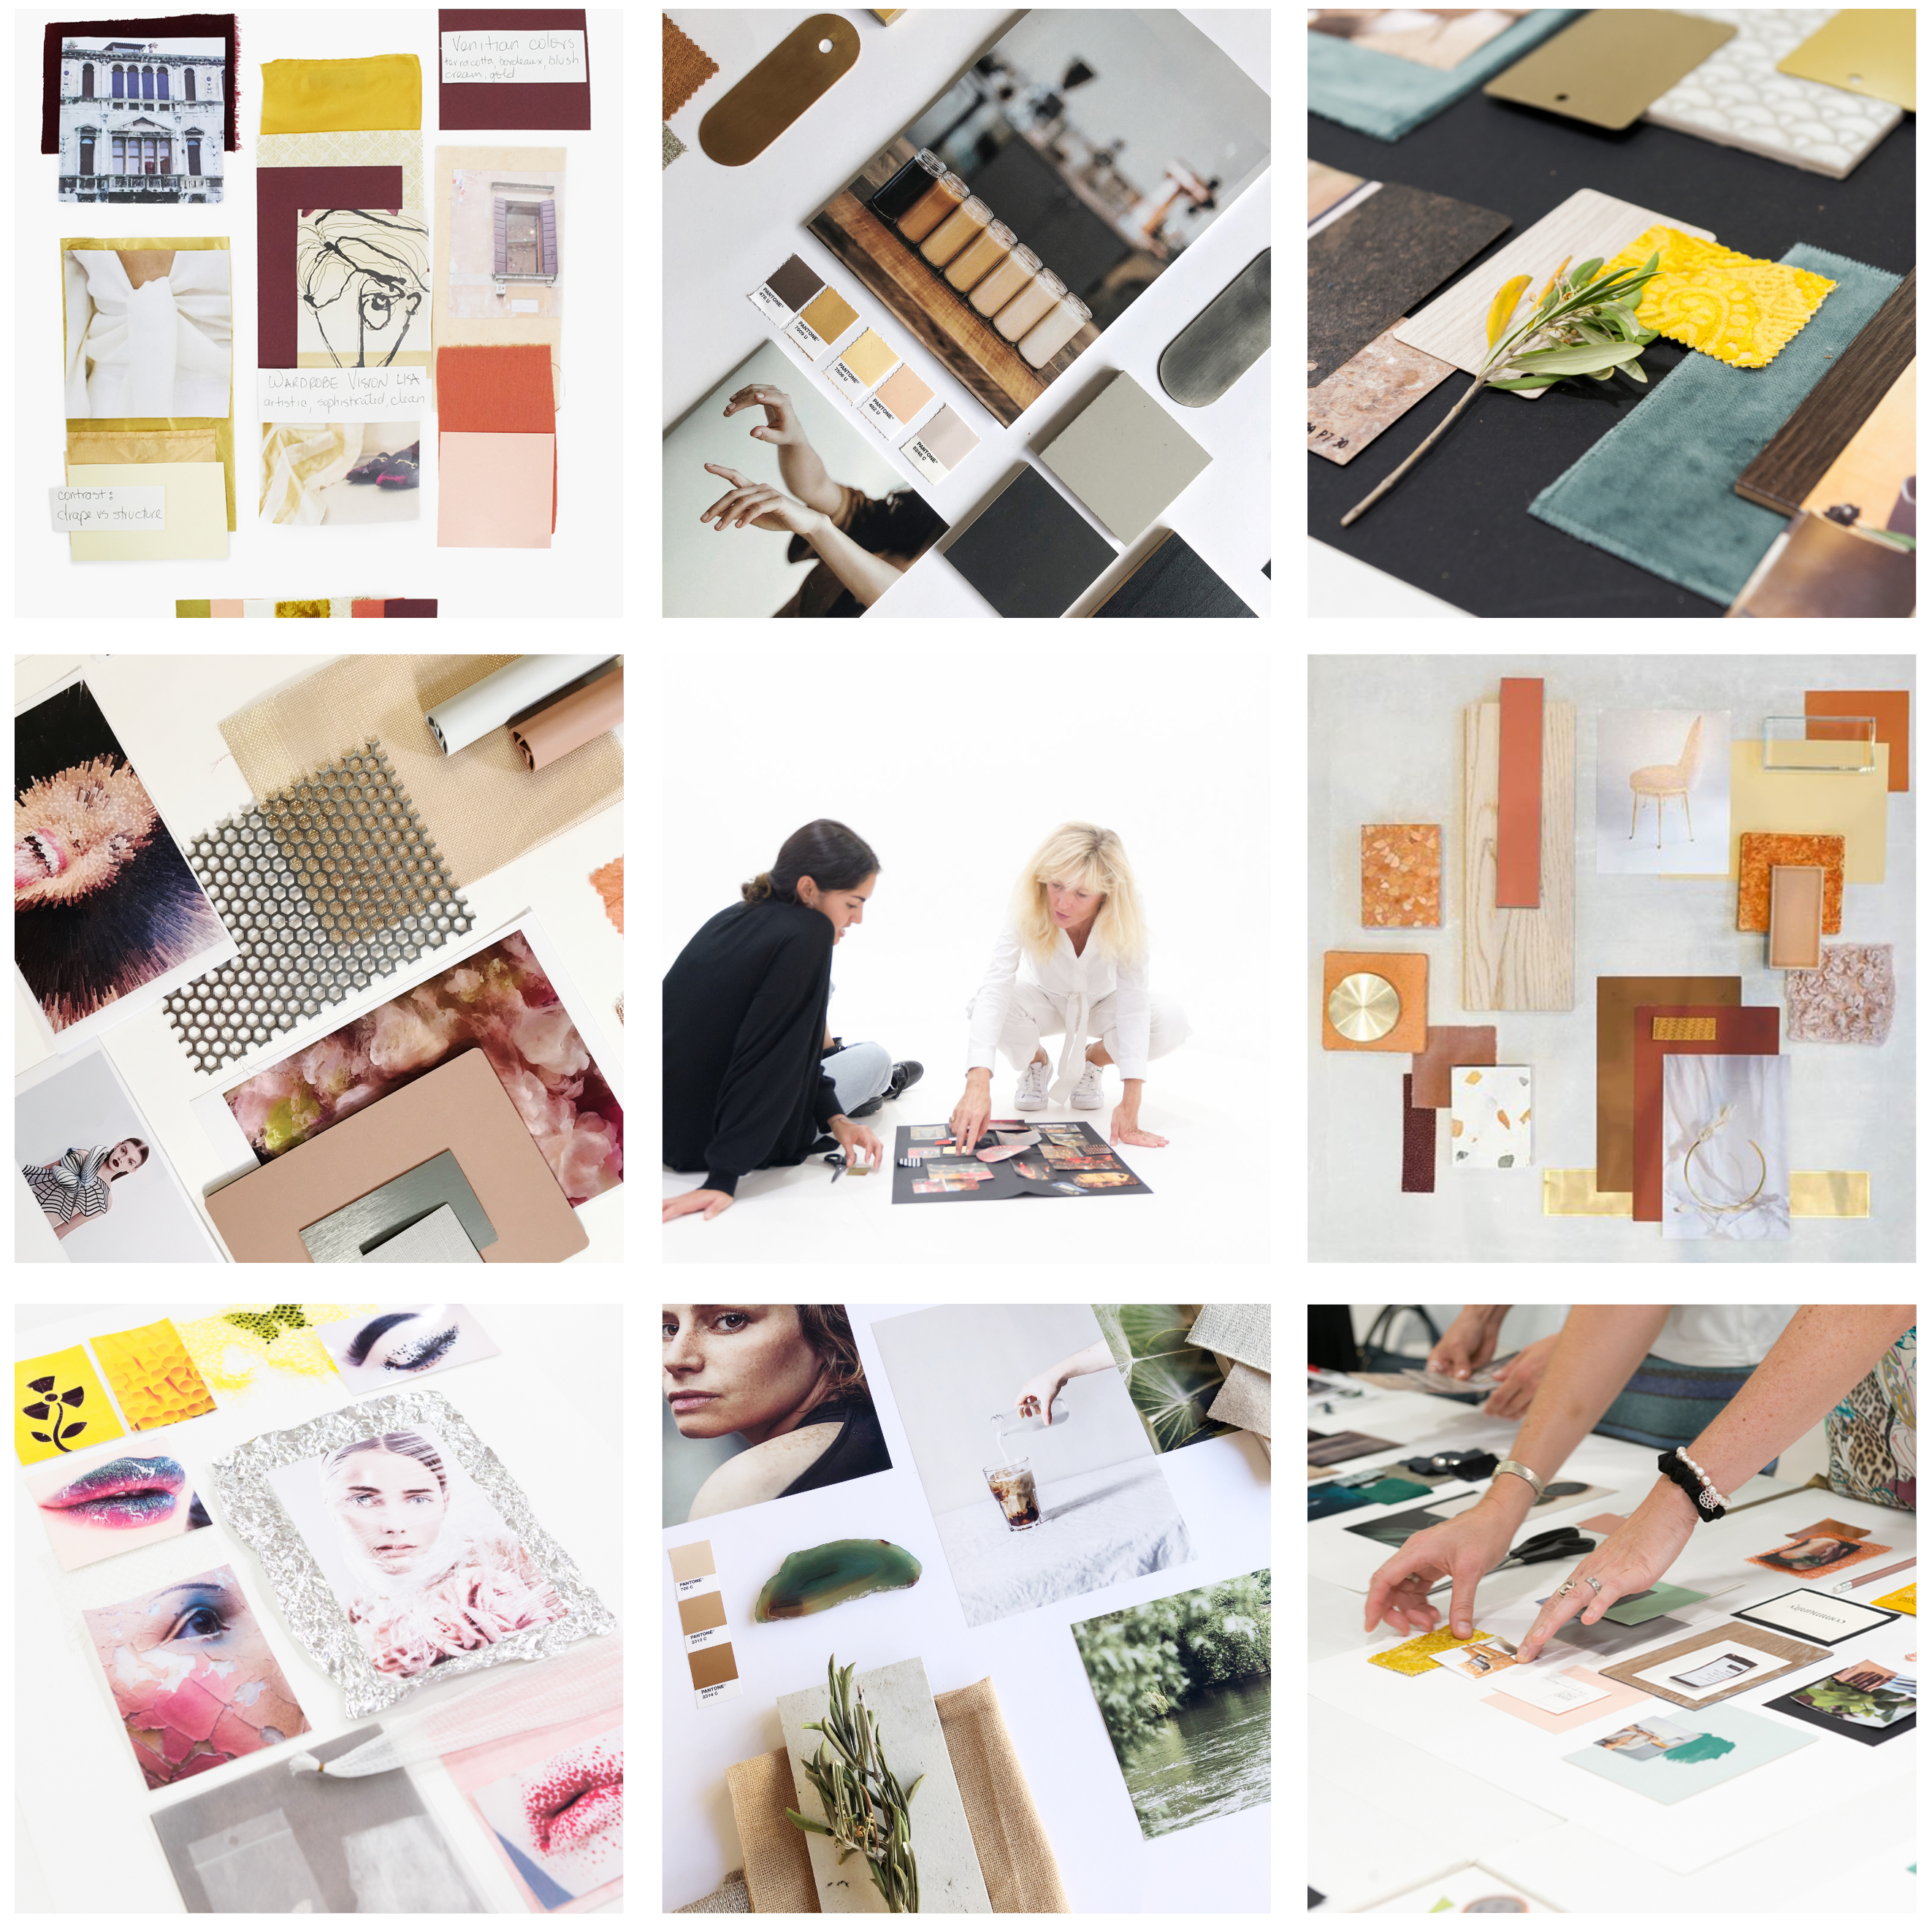 New Instagram Feed: MoodBoardAcademy